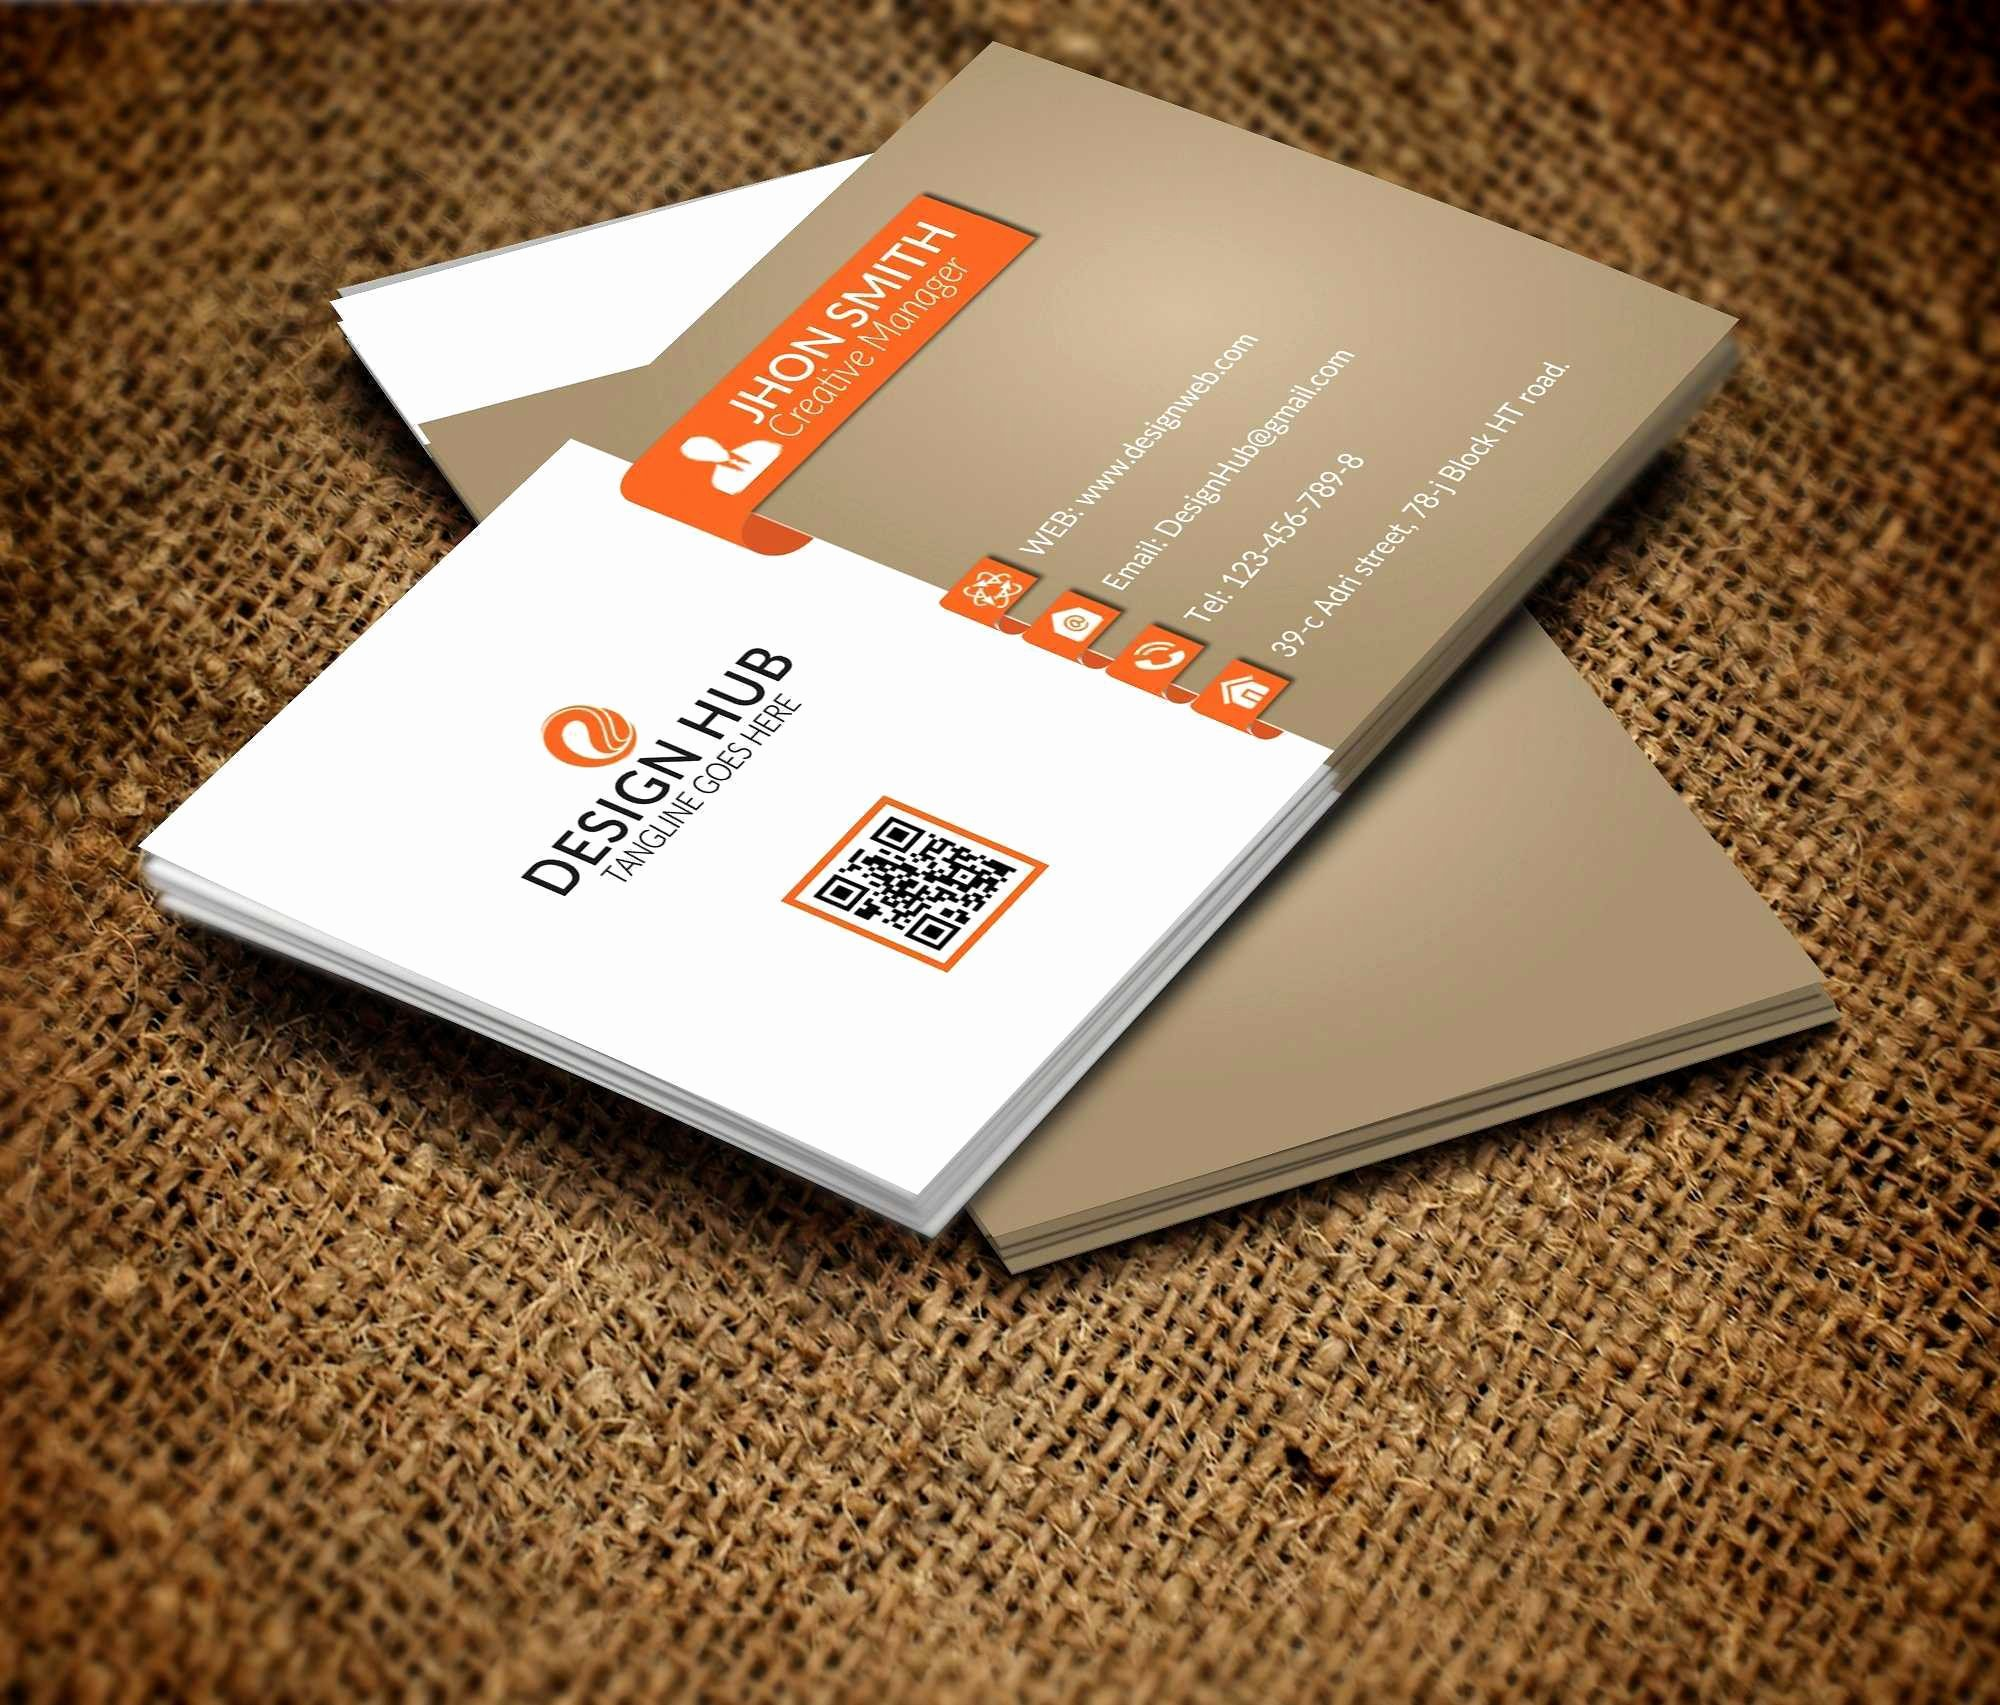 folding business cards template beautiful folded business card mockup v2 by idesignstudio dribbble